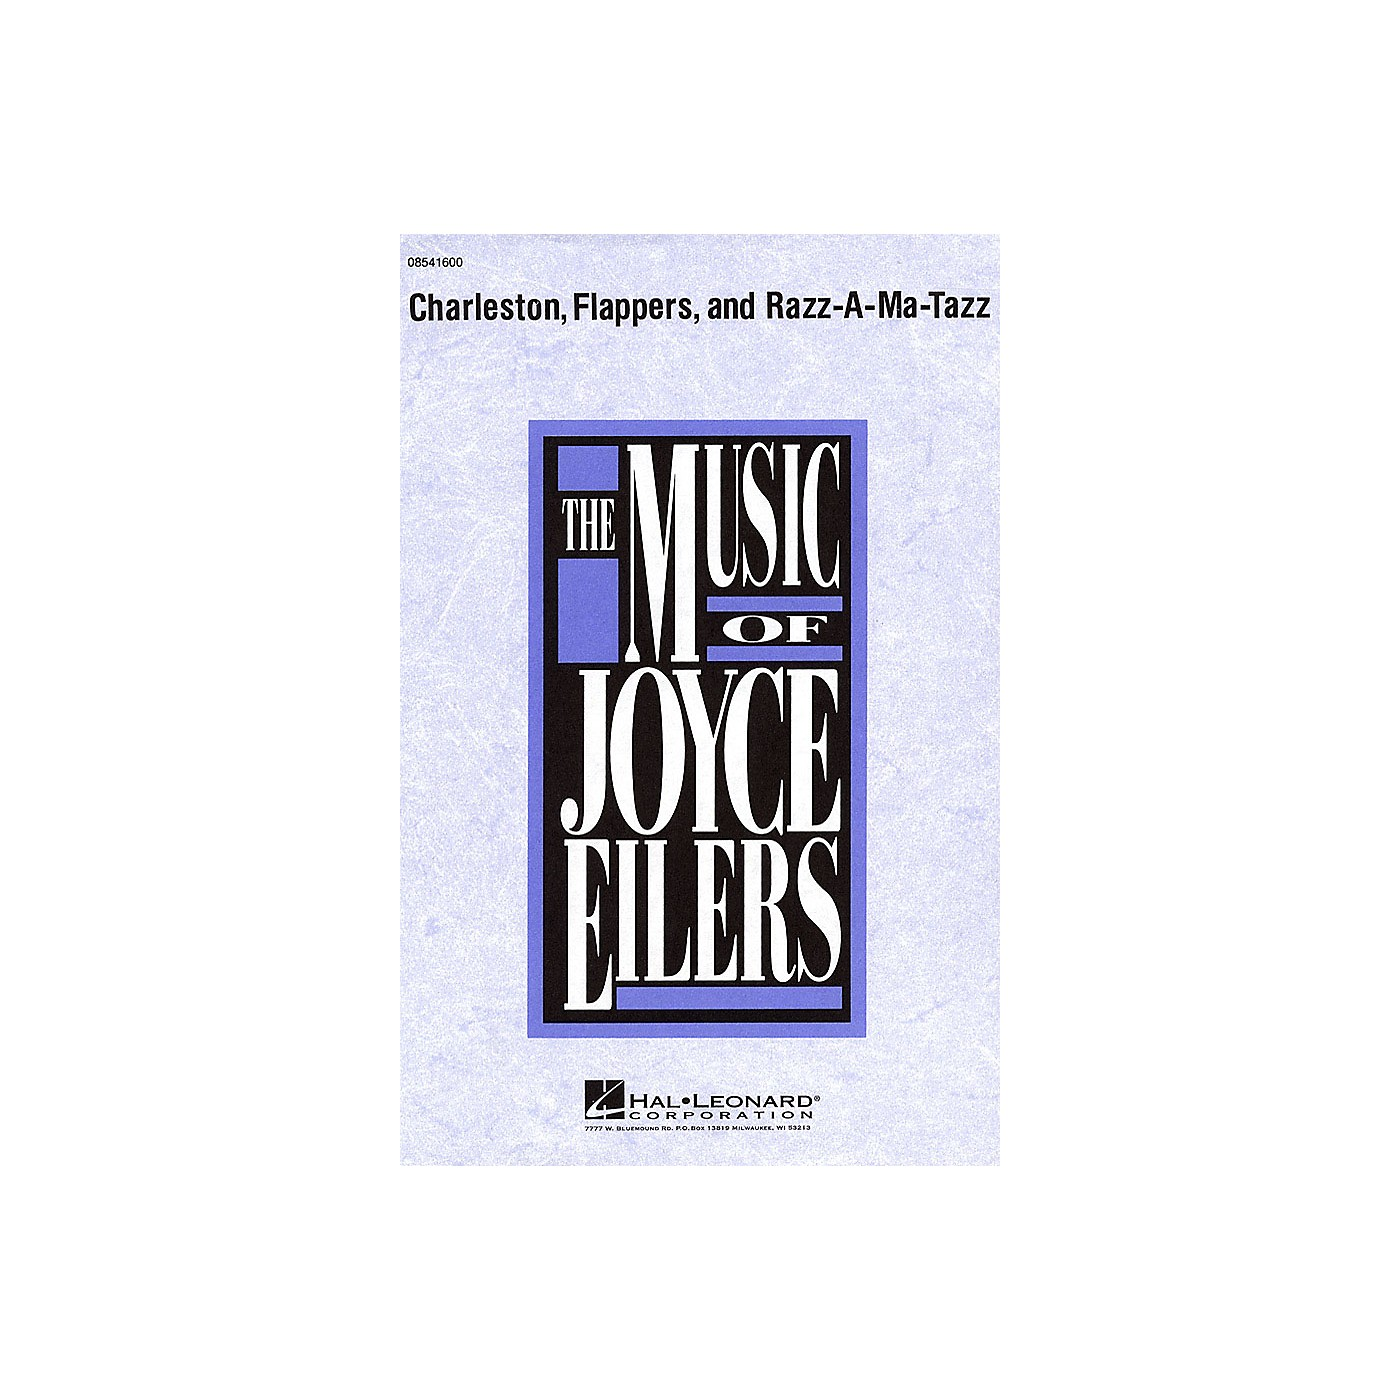 Hal Leonard Charleston, Flappers, and Razz-A-Ma-Tazz SATB composed by Joyce Eilers thumbnail